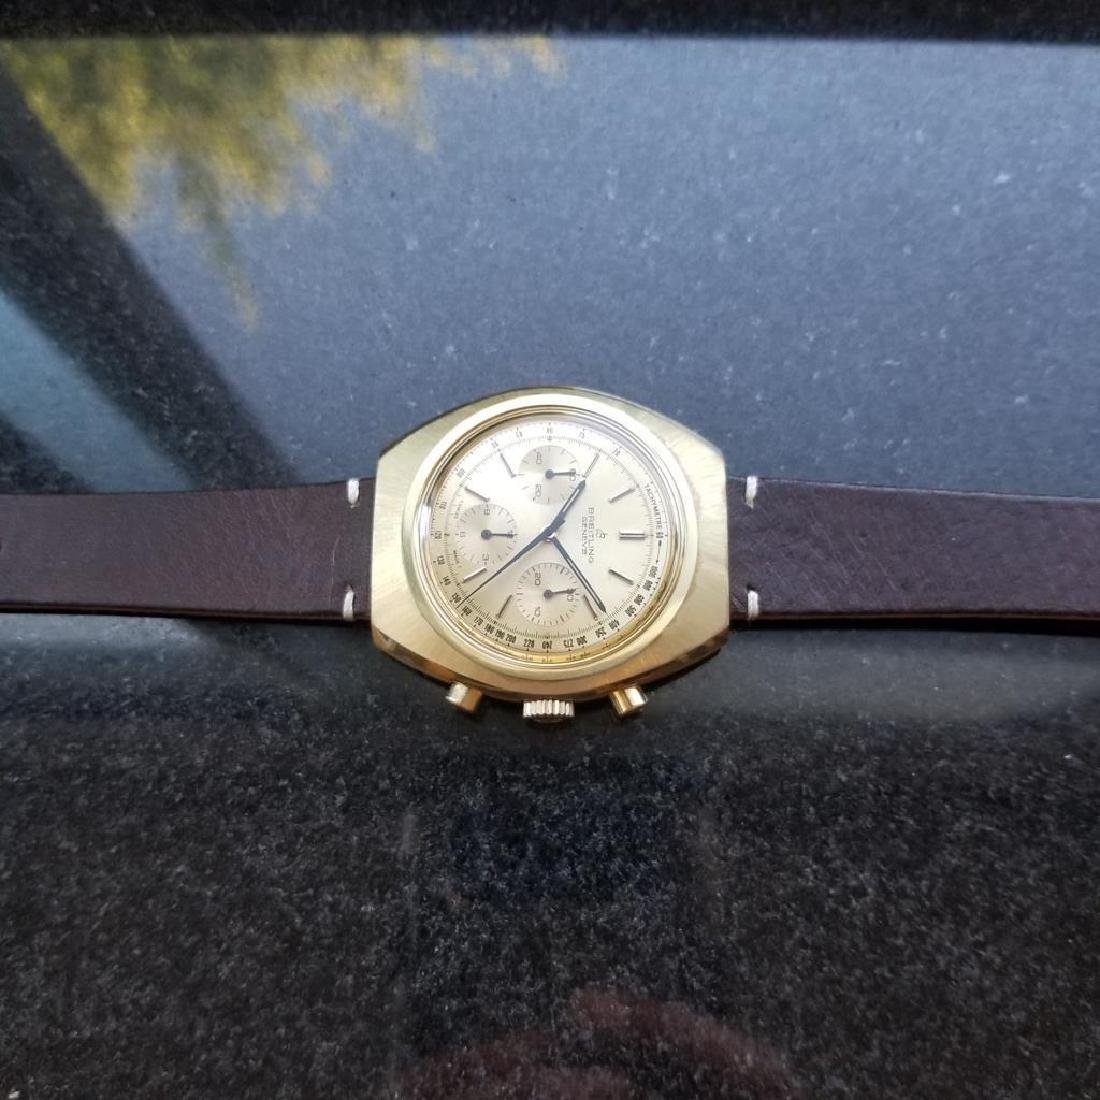 BREITLING 1451 Tricompax Manual Wind Chronograph 42mm - 7